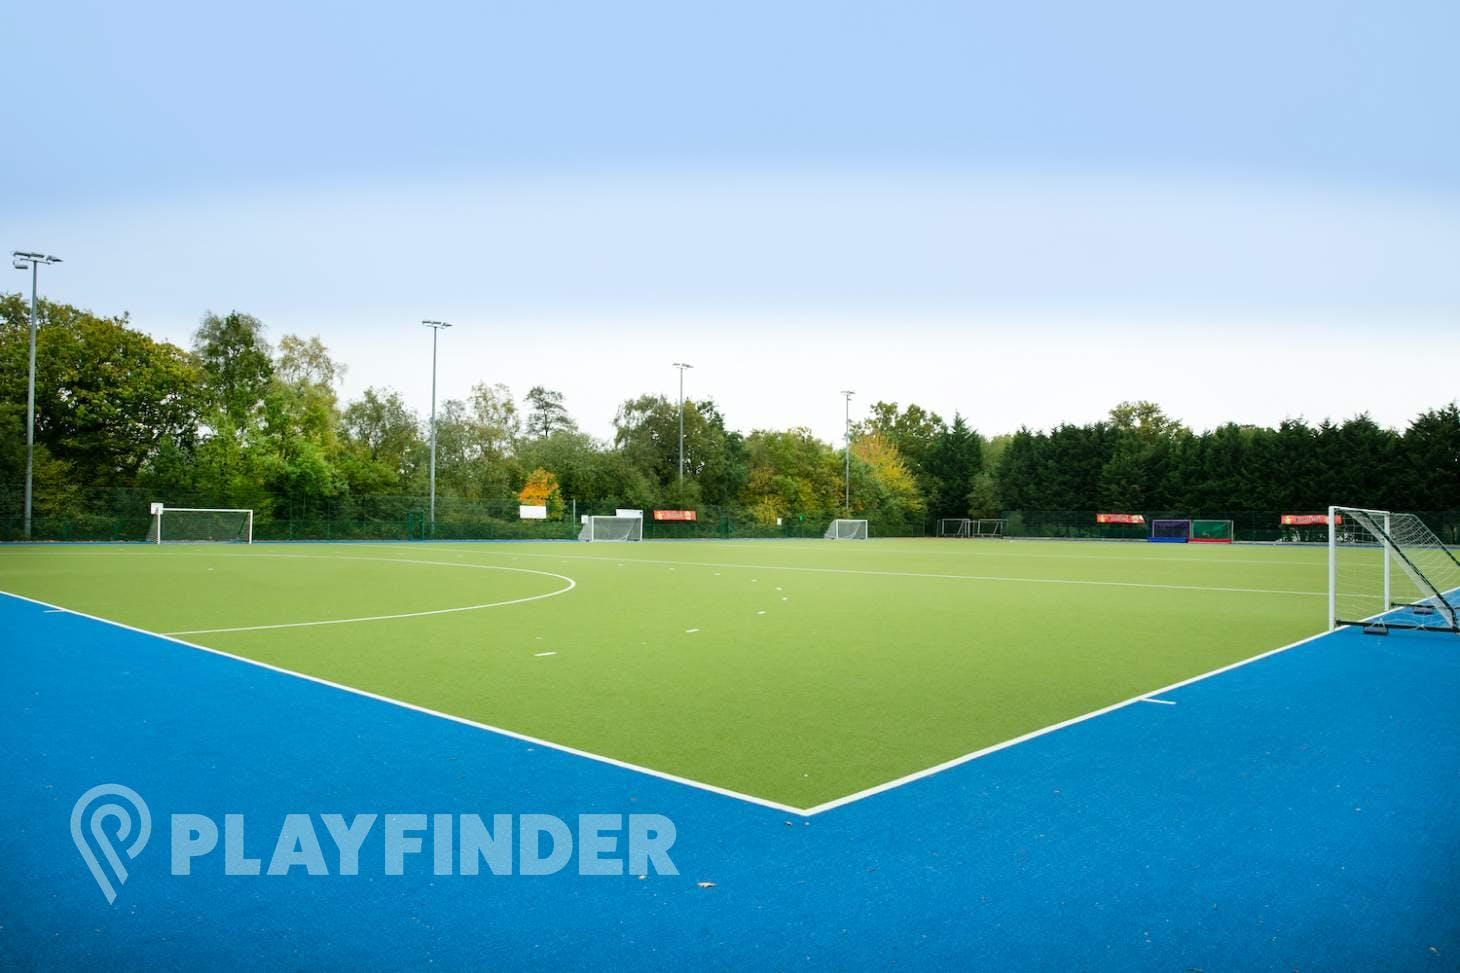 Kings International College 6-a-side pitch | Water-based Astroturf hockey pitch